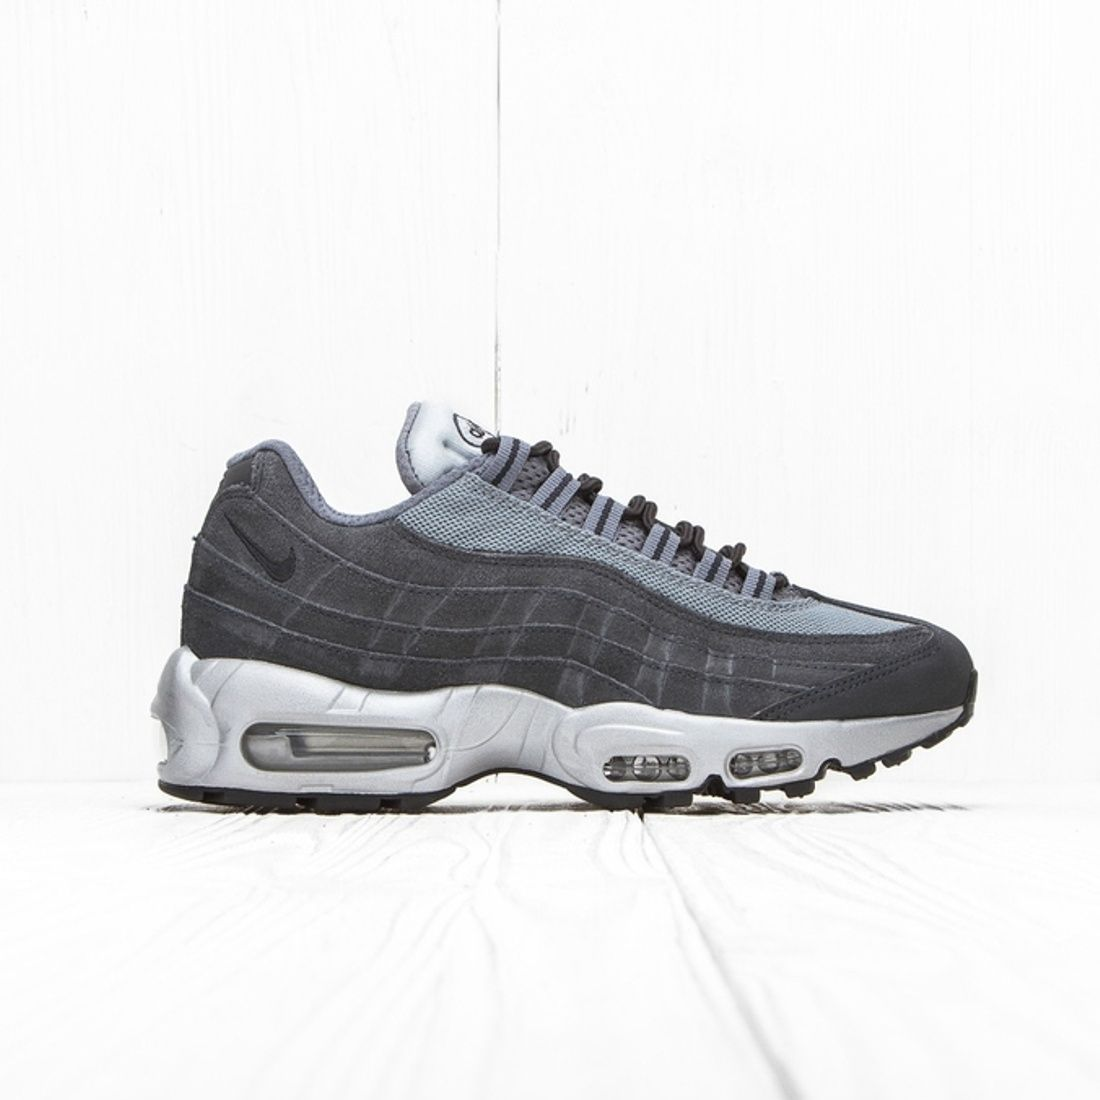 21029b93126b Nike Nike Air Max 95 Prm Wolf Grey Cool Grey Black Anthracite 538416 002 8.5  Us Size 8.5  286 - Grailed